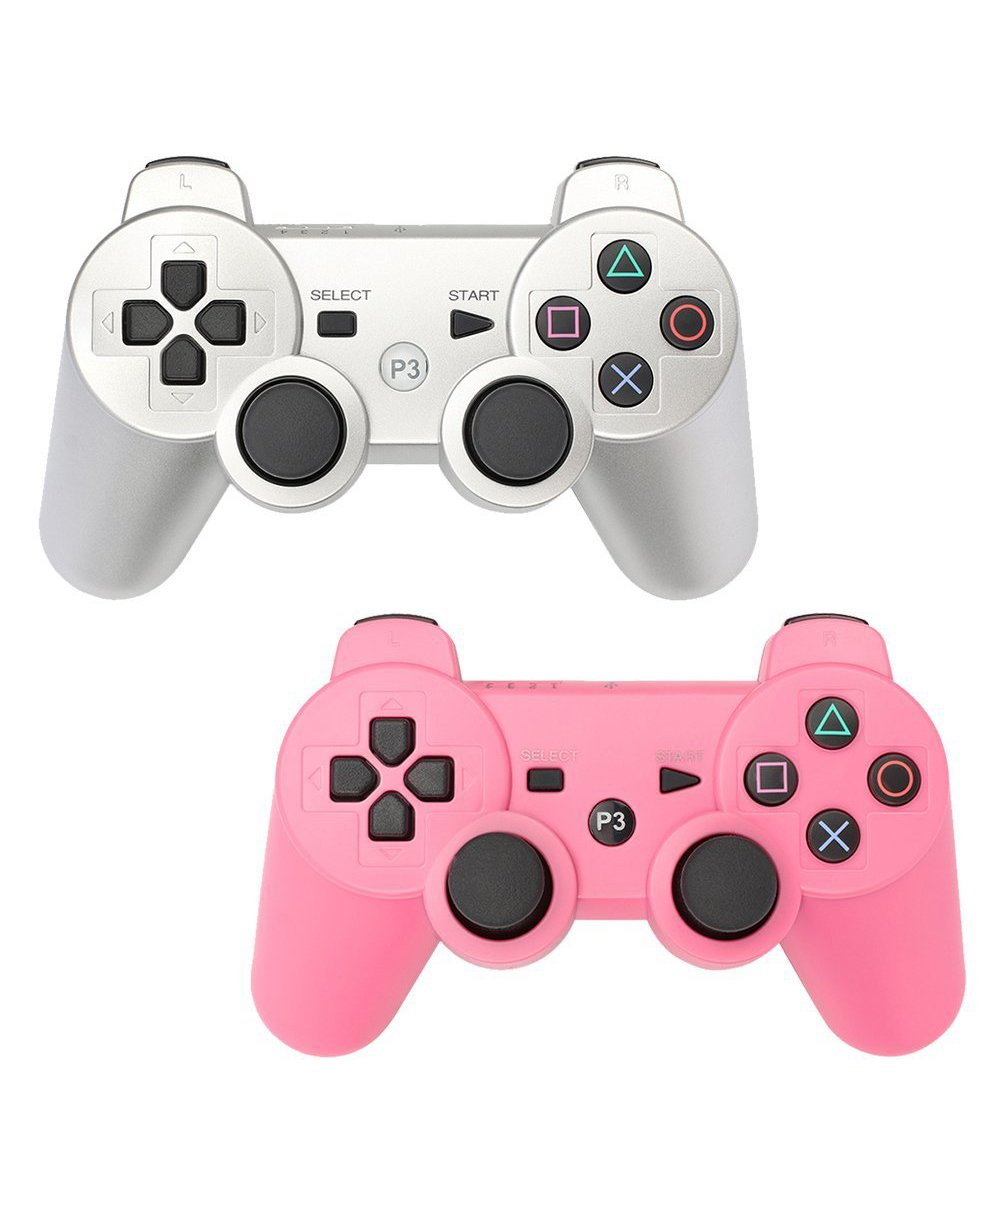 HBetterTech PS3 Controller 2 Pack Wireless Bluetooth Six Axis Controllers Gamepad for PlayStation 3 Dualshock 3 (1Siver + 1Pink)